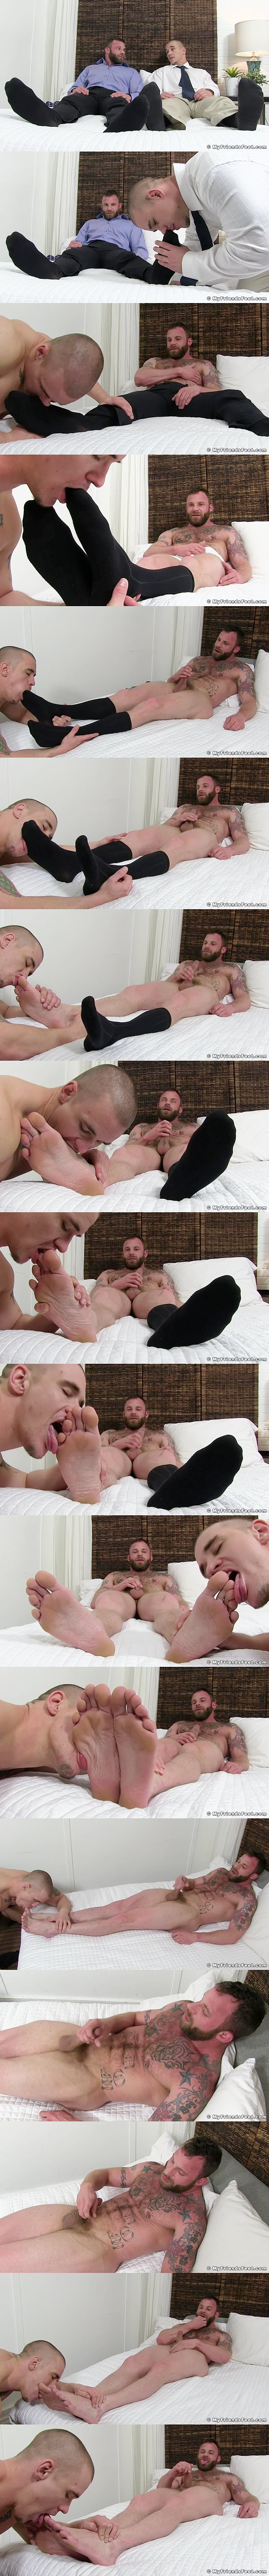 Adam Bryant worships Derek Parker's socks and feet before Derek jerks off at Myfriendsfeet 02